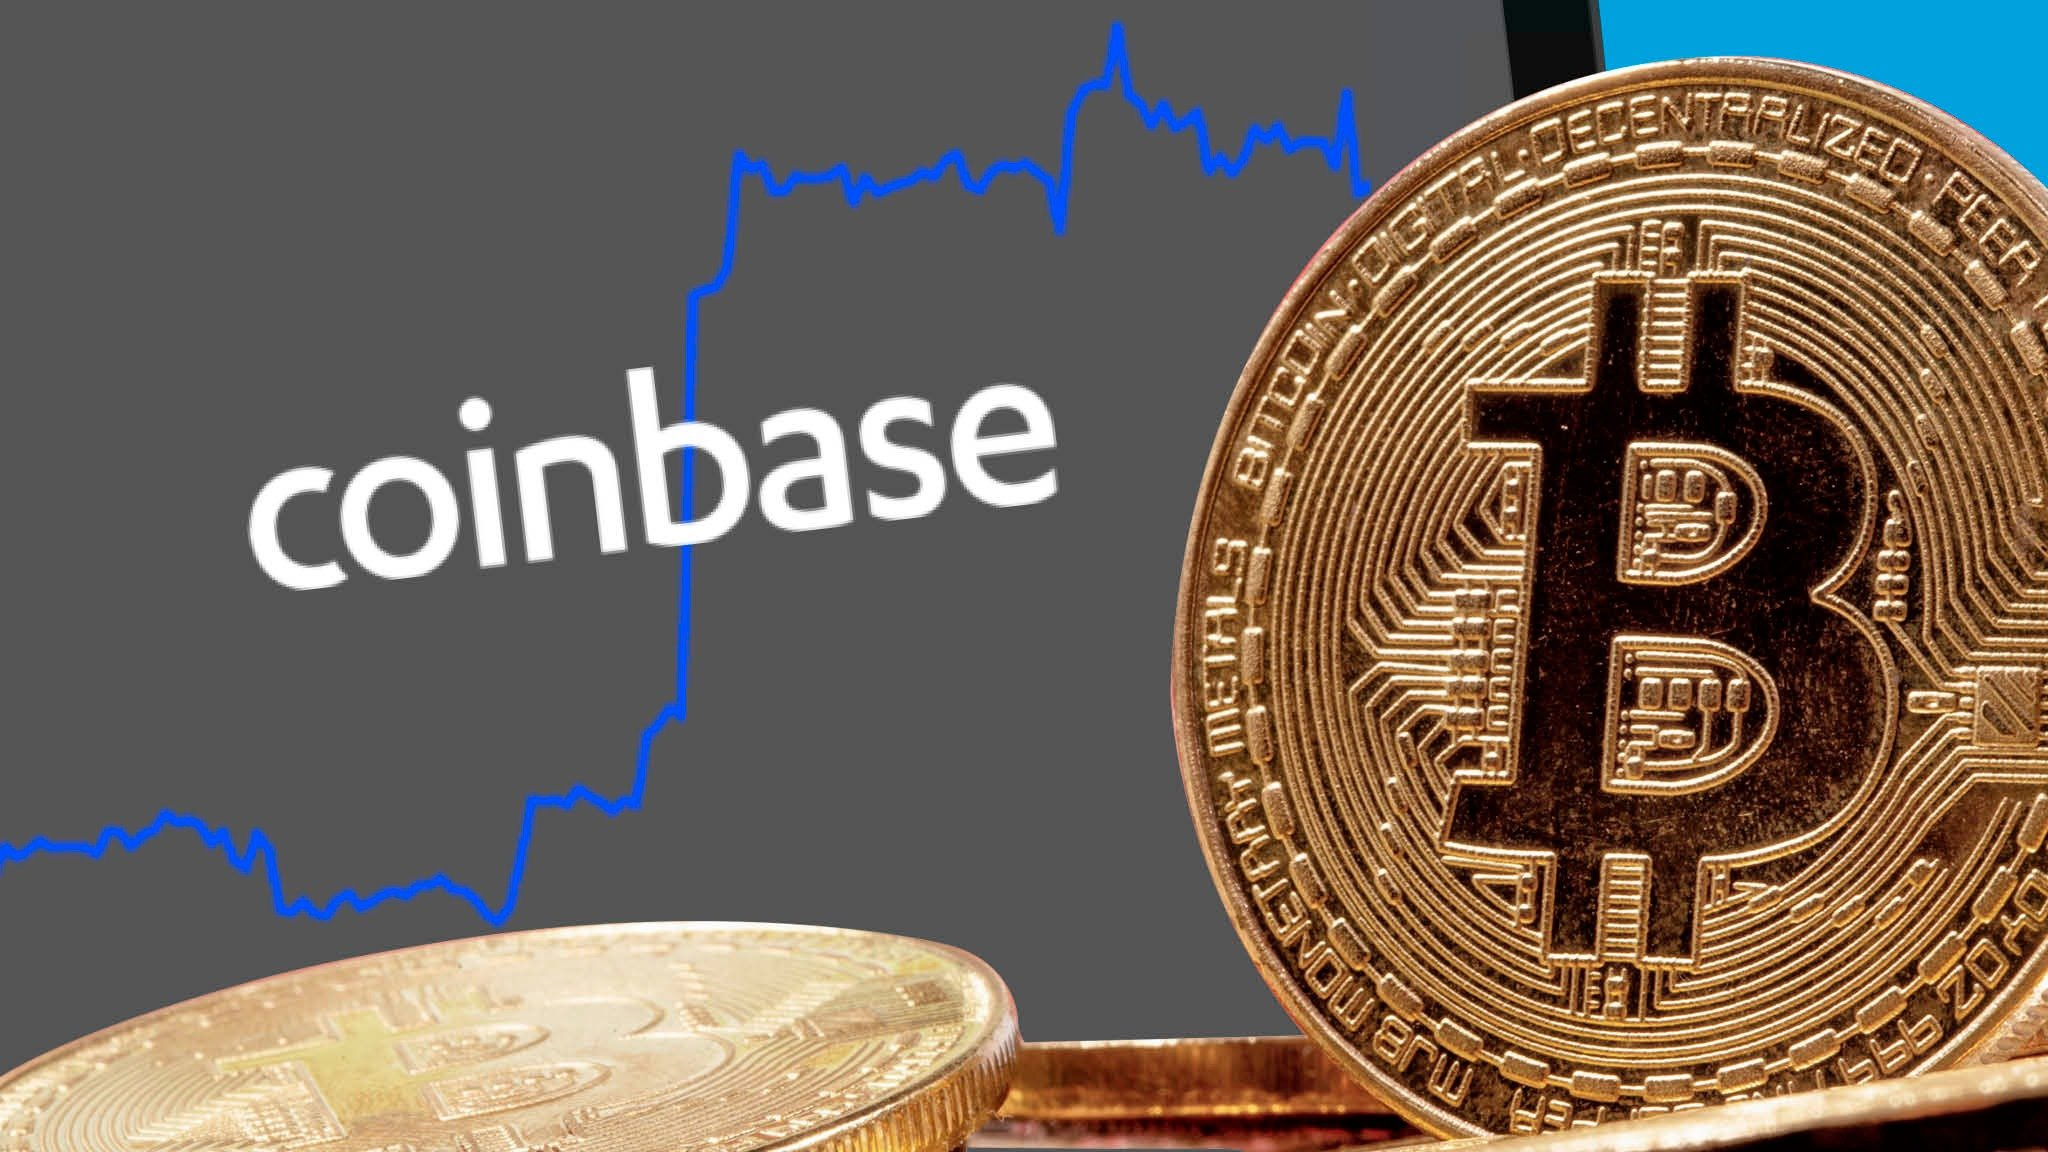 Coinbase indicated to open at $340